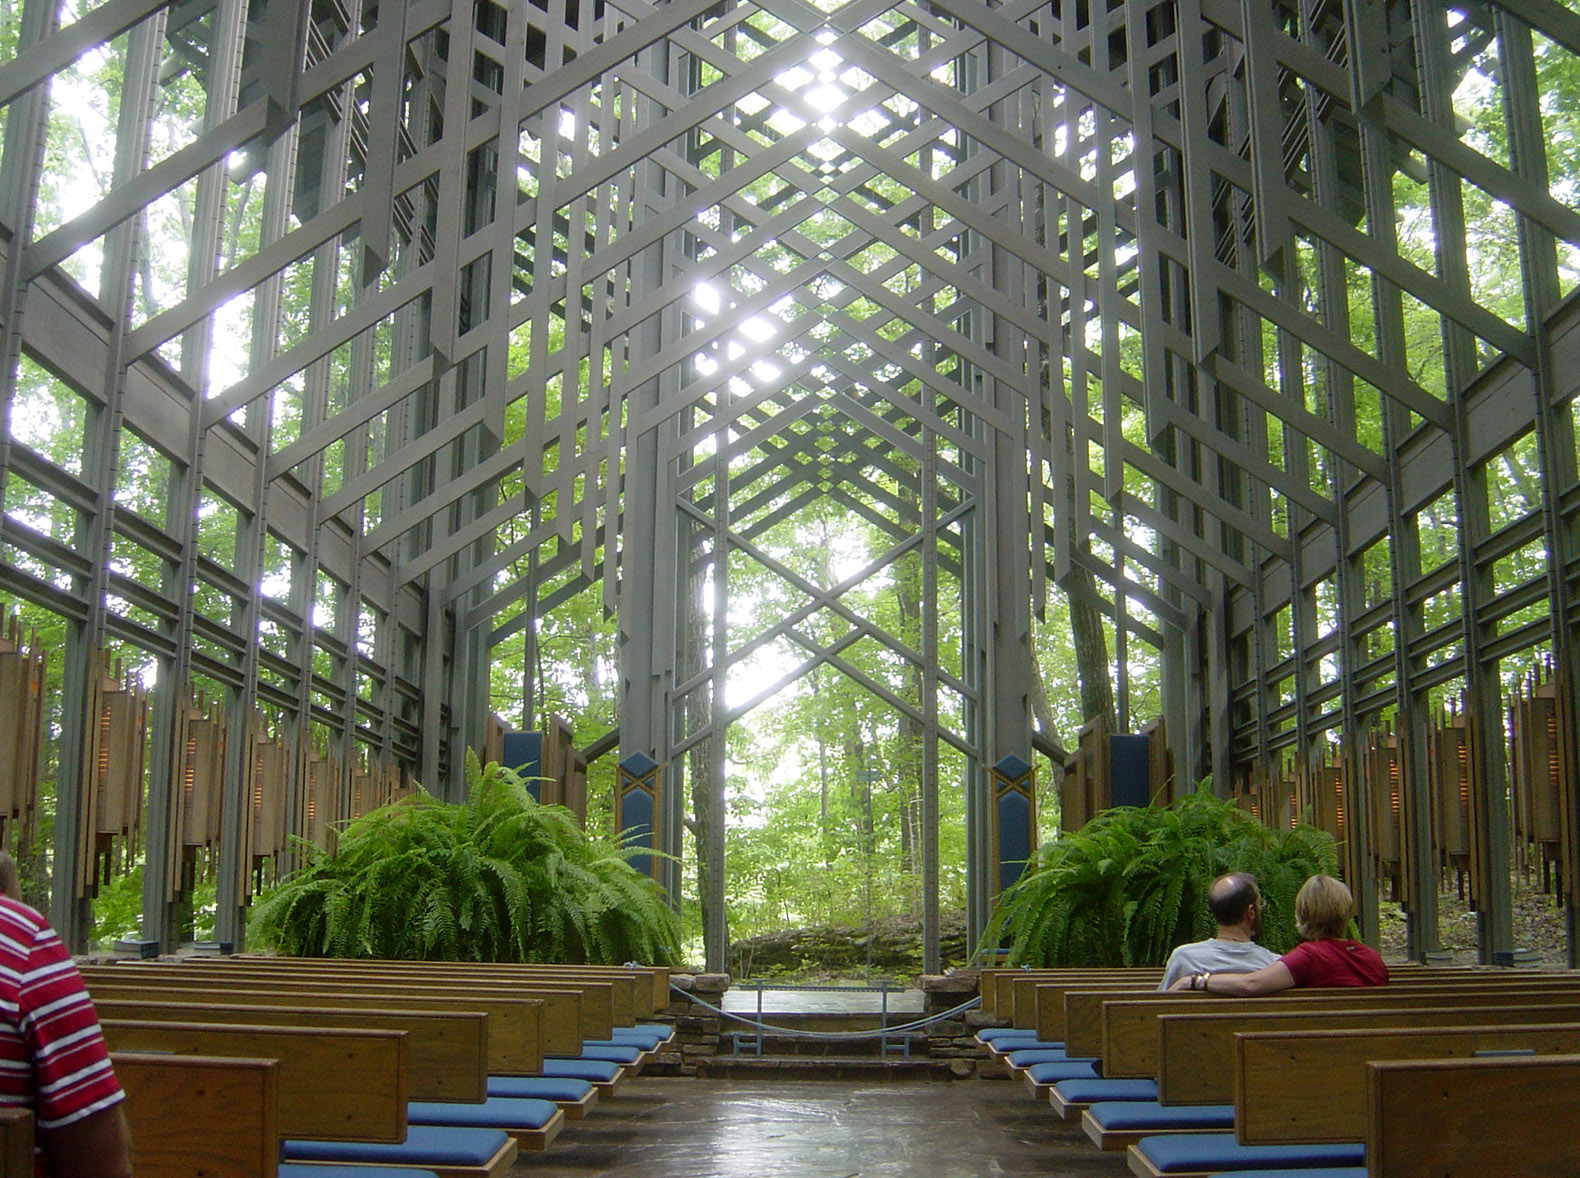 09-02-06-thorncrownchapel1